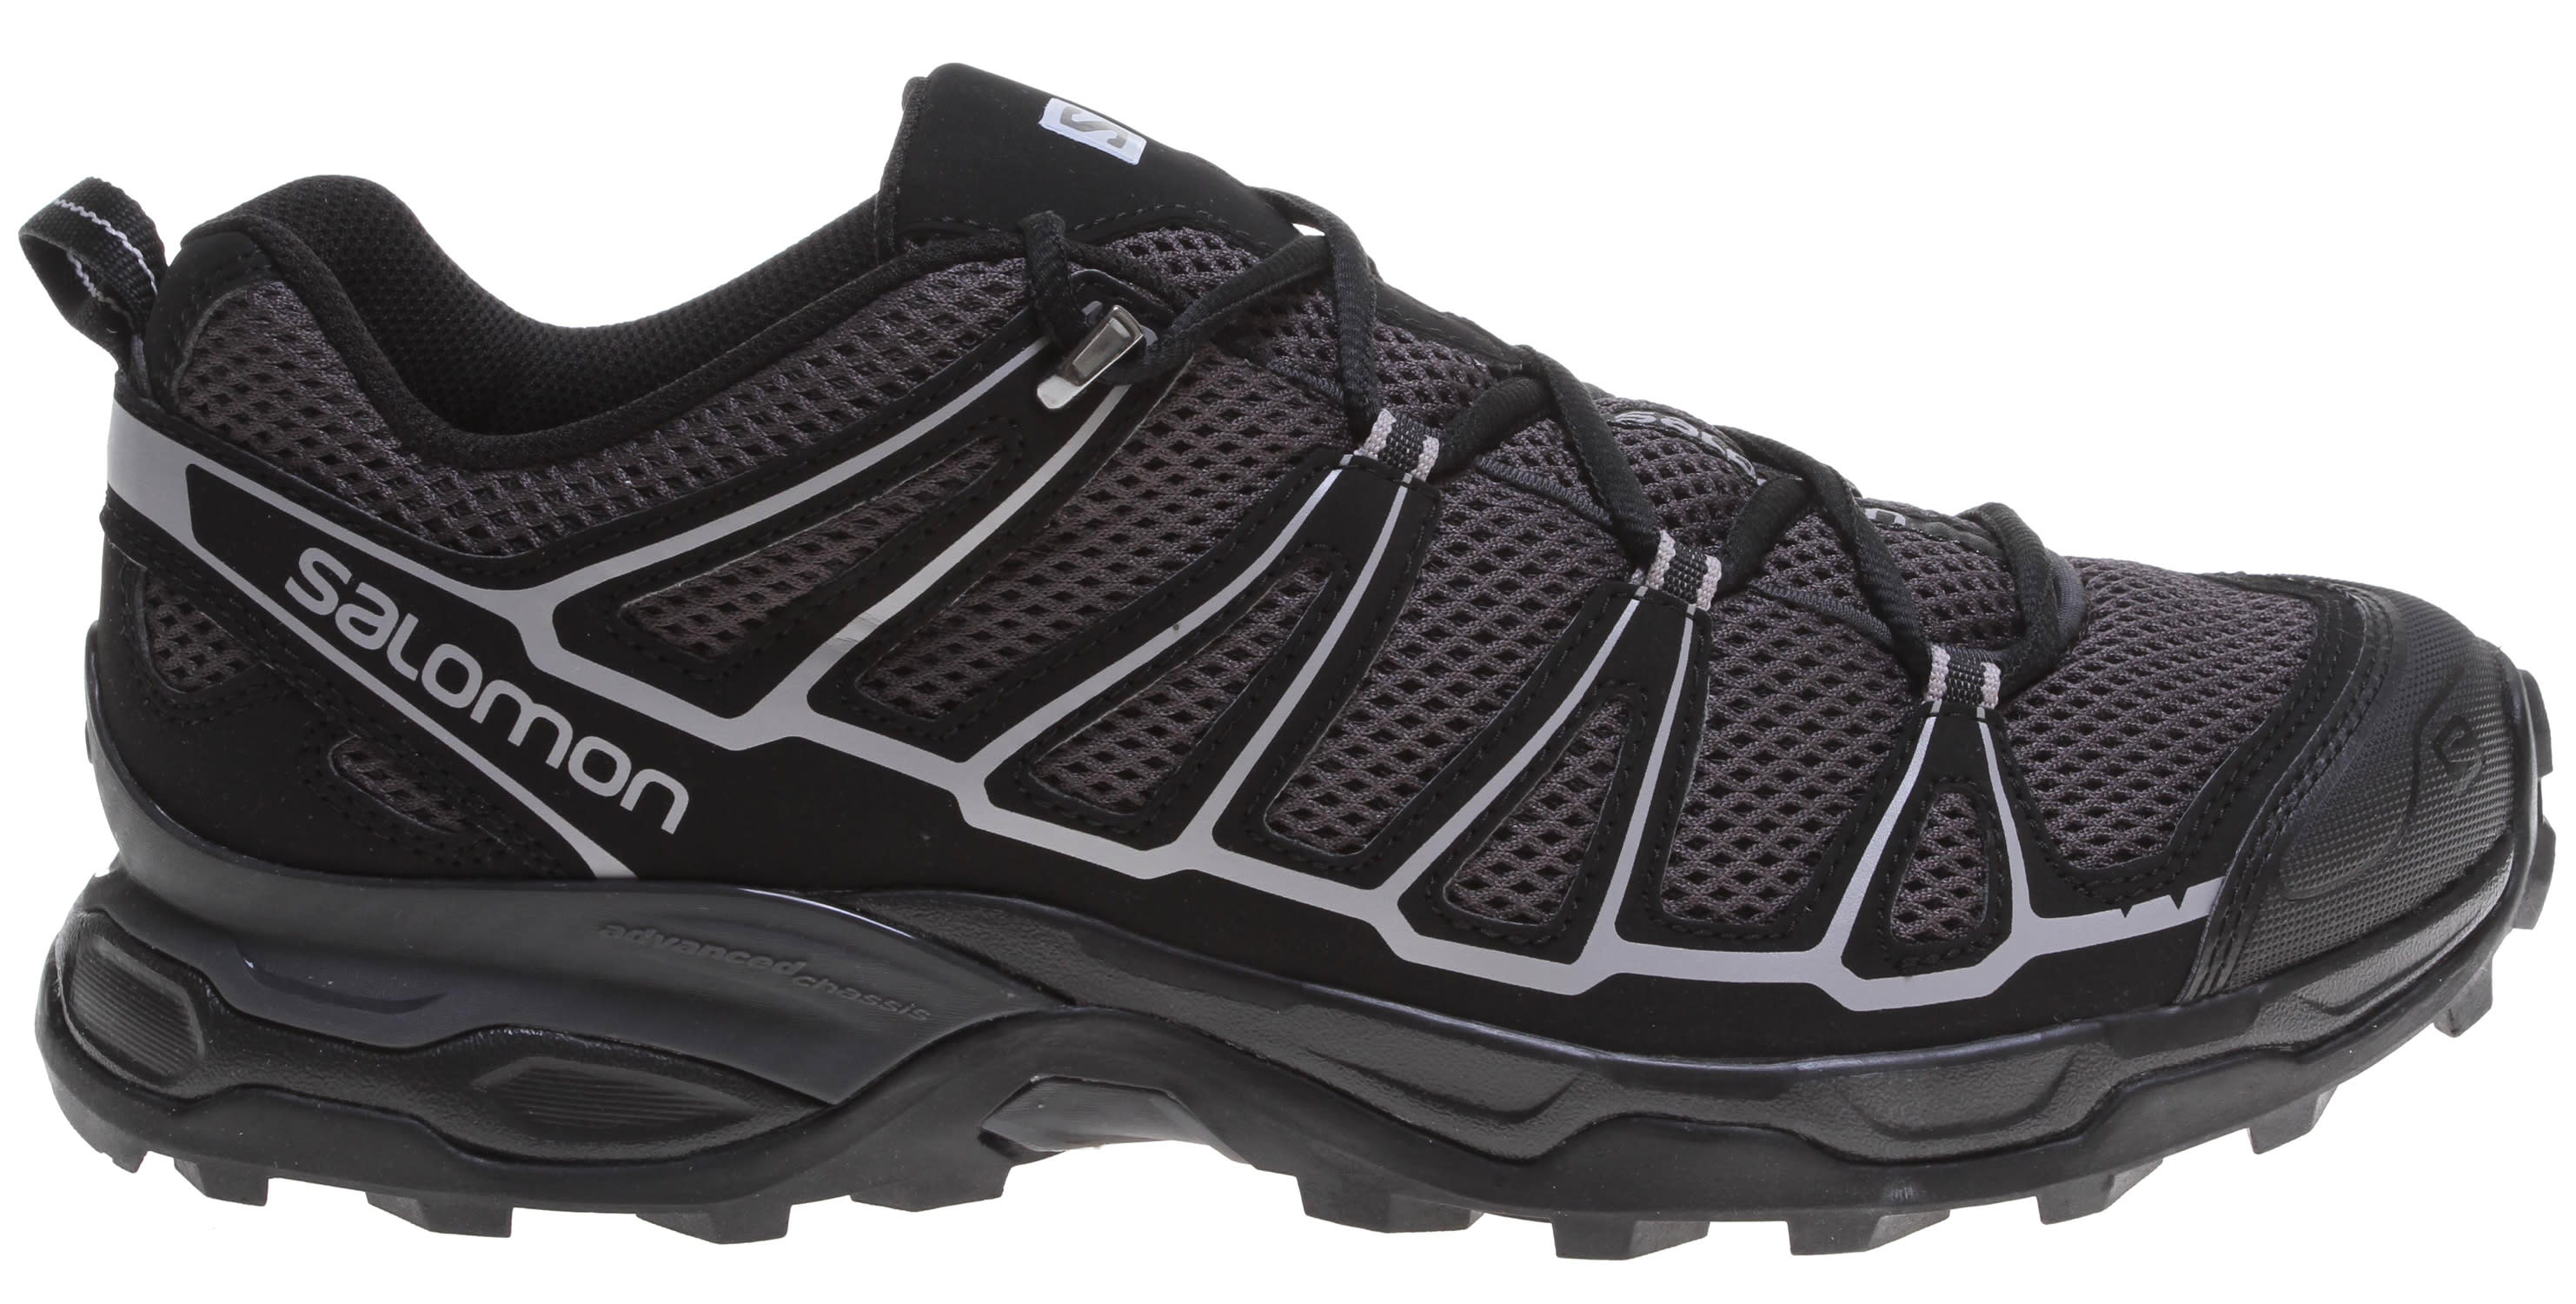 Reviews Of Salomon Hiking Shoes